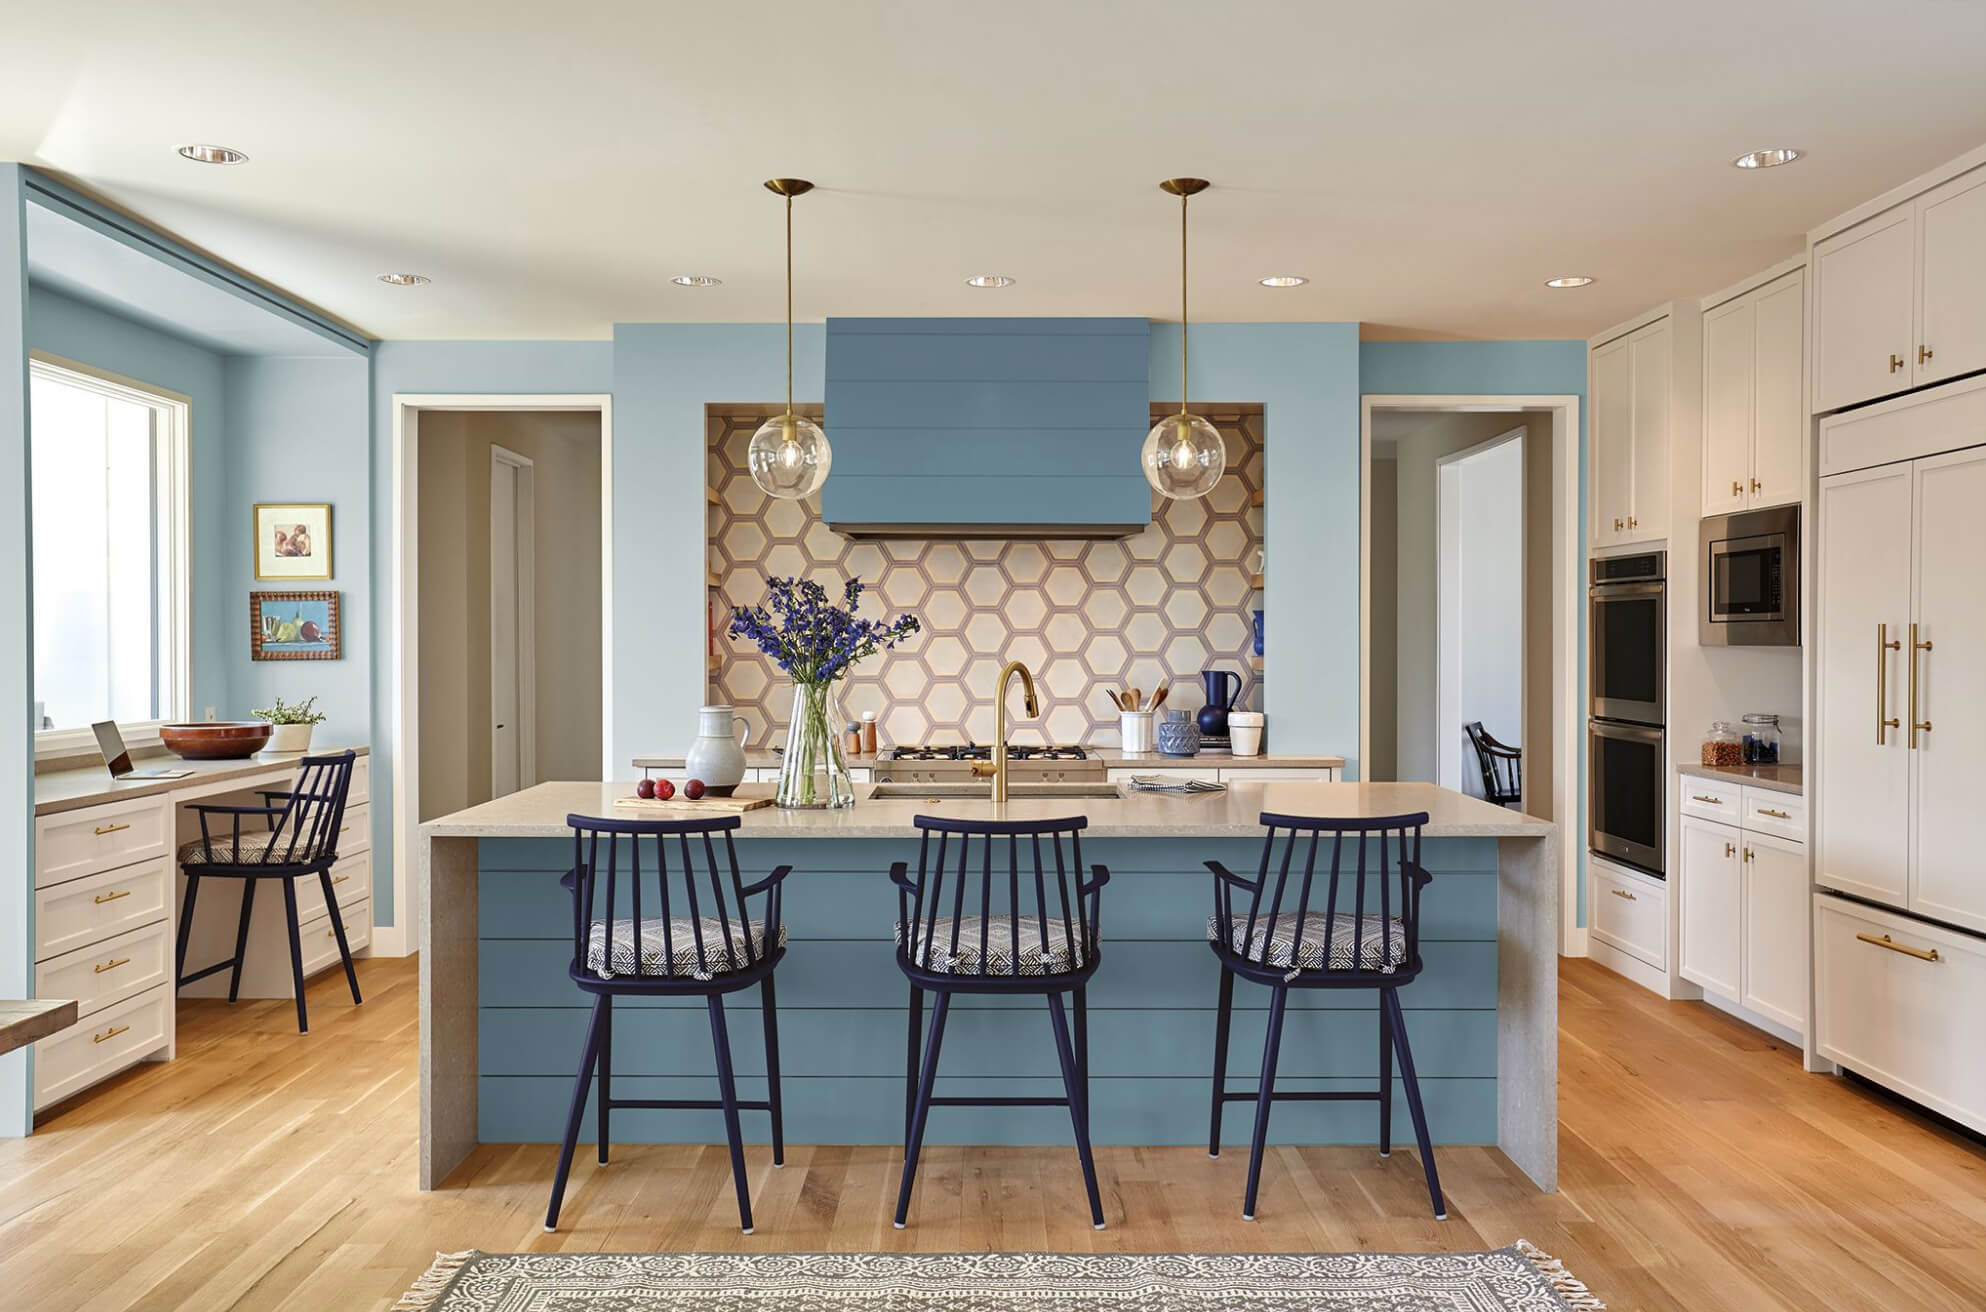 Decorating Ideas For Behr Blueprint: 2019 Color Of The